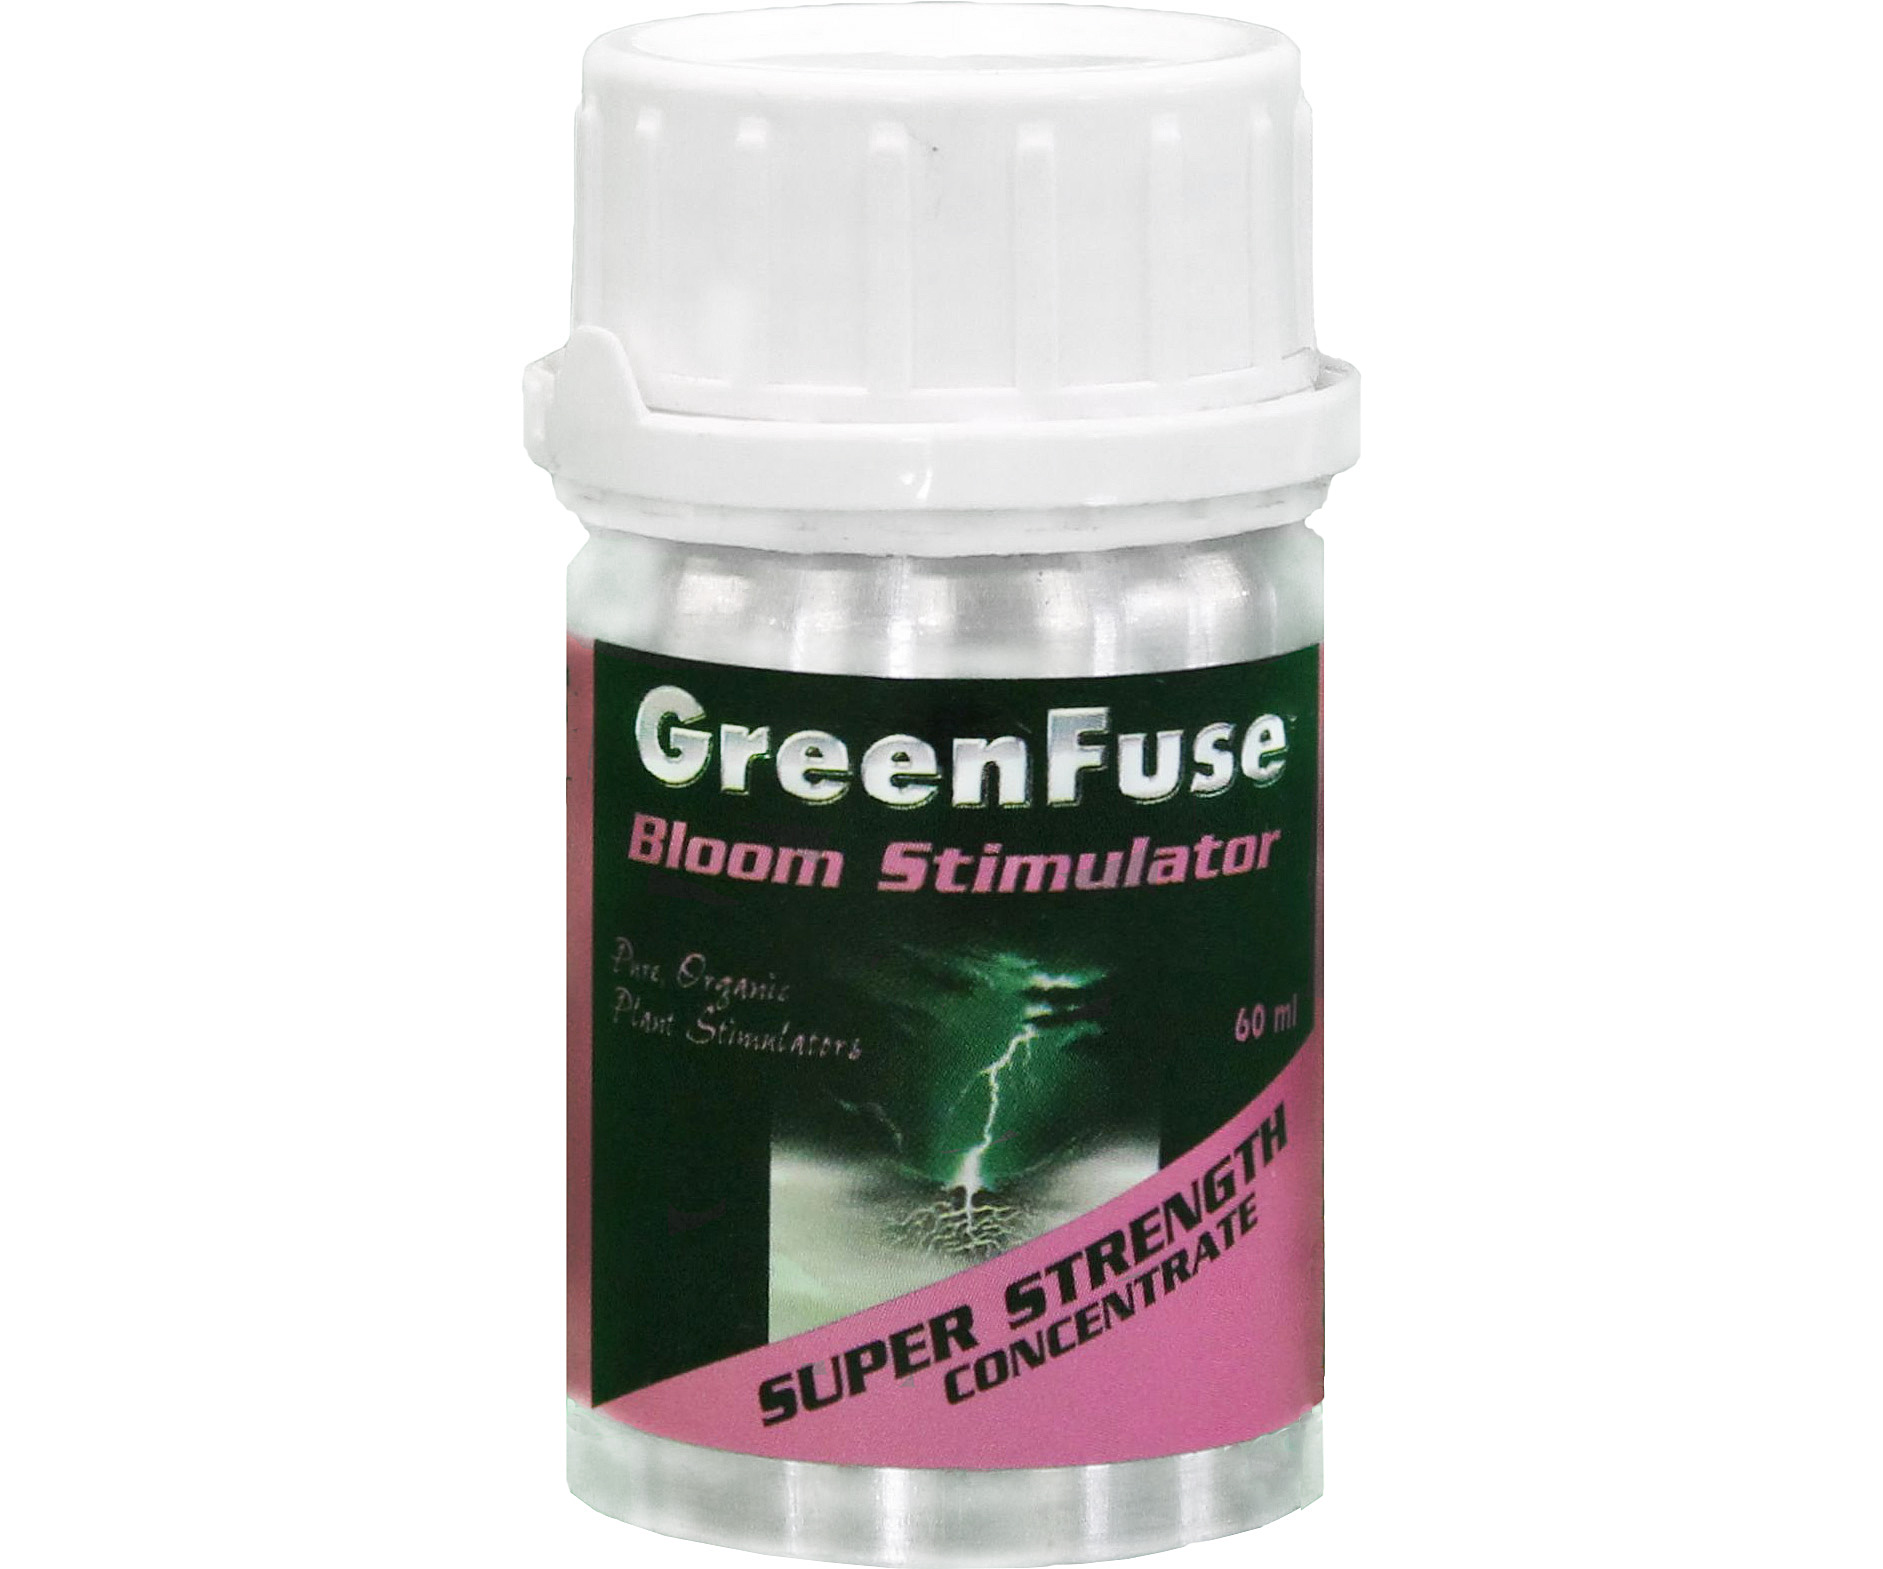 Greenfuse Bloom Stimulator Concentrate 60ml